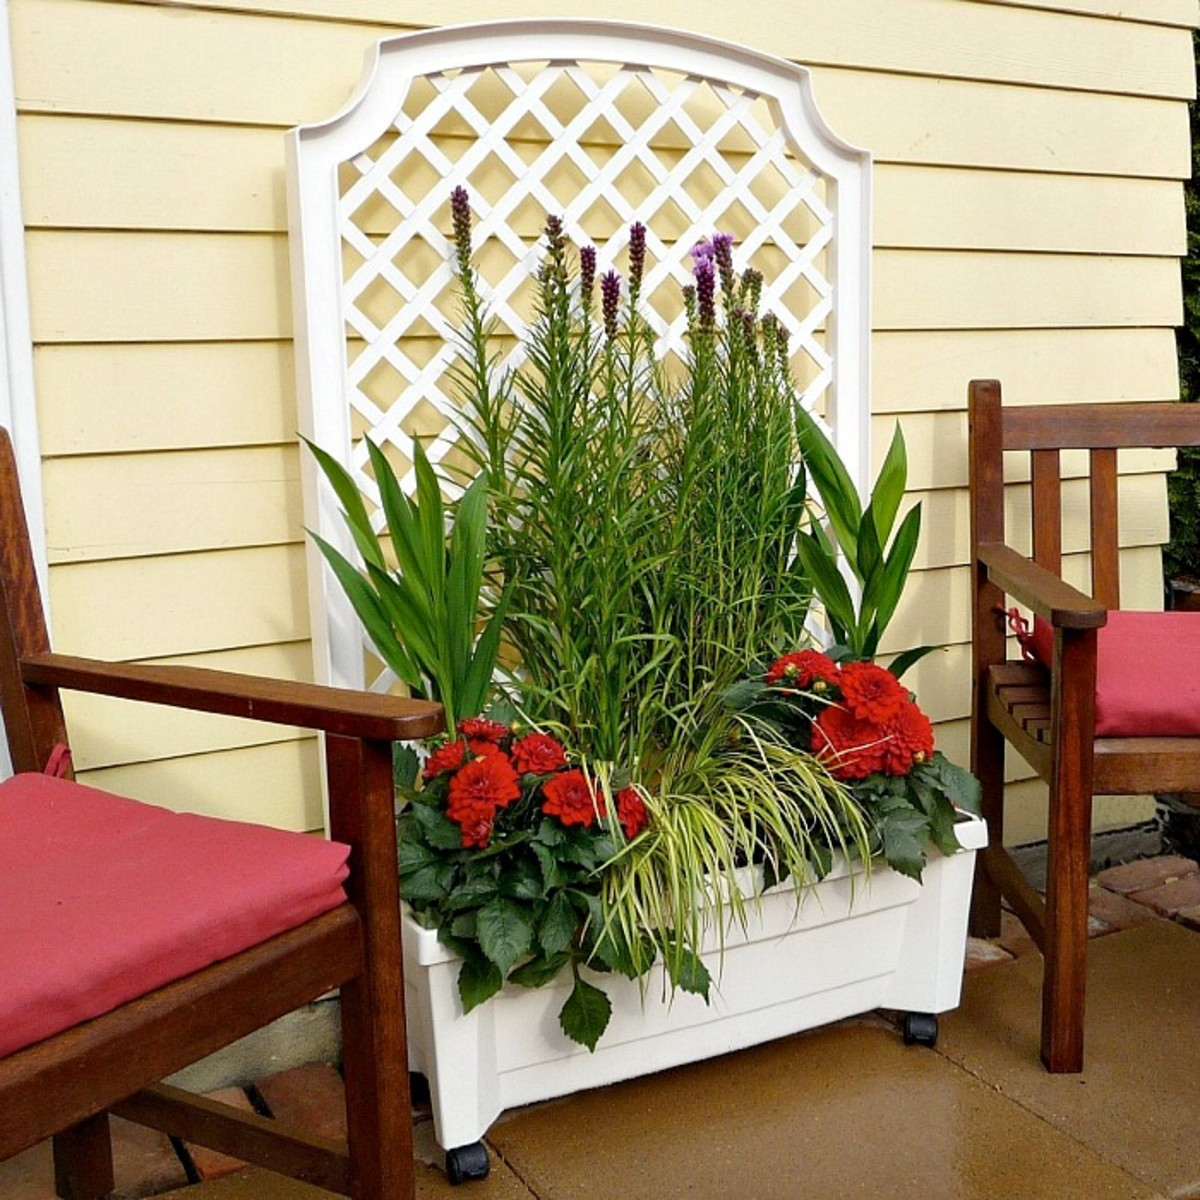 Large Redwood Planter Box For Tomatoes: Container Tomato Gardening